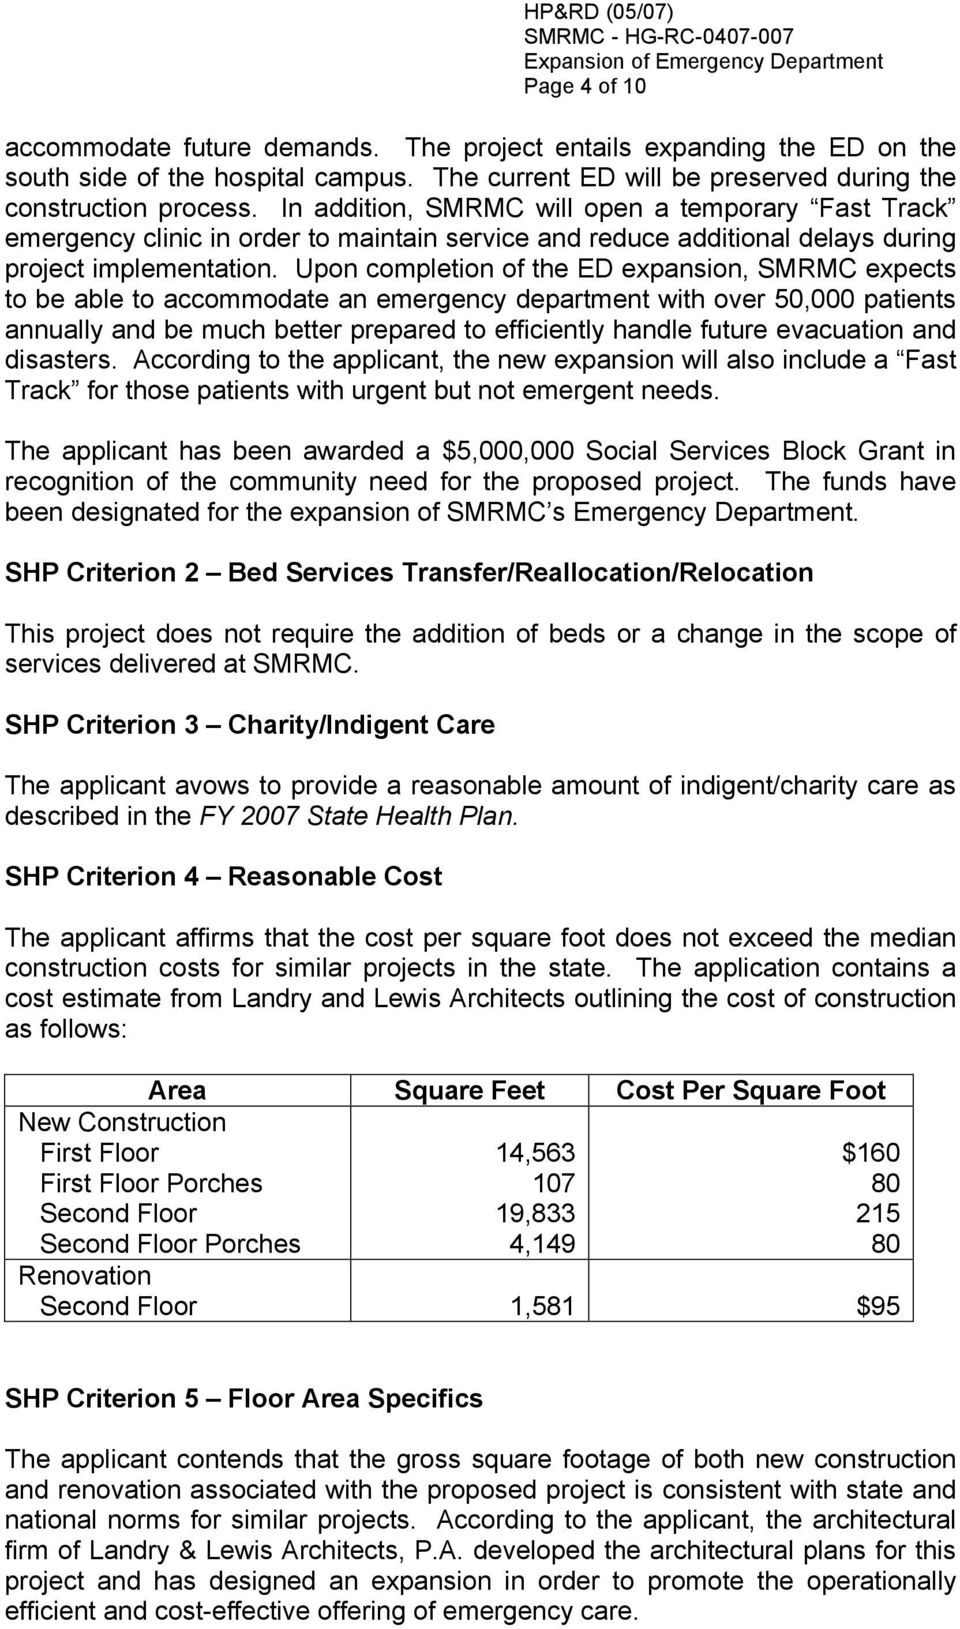 Upon completion of the ED expansion, SMRMC expects to be able to accommodate an emergency department with over 50,000 patients annually and be much better prepared to efficiently handle future